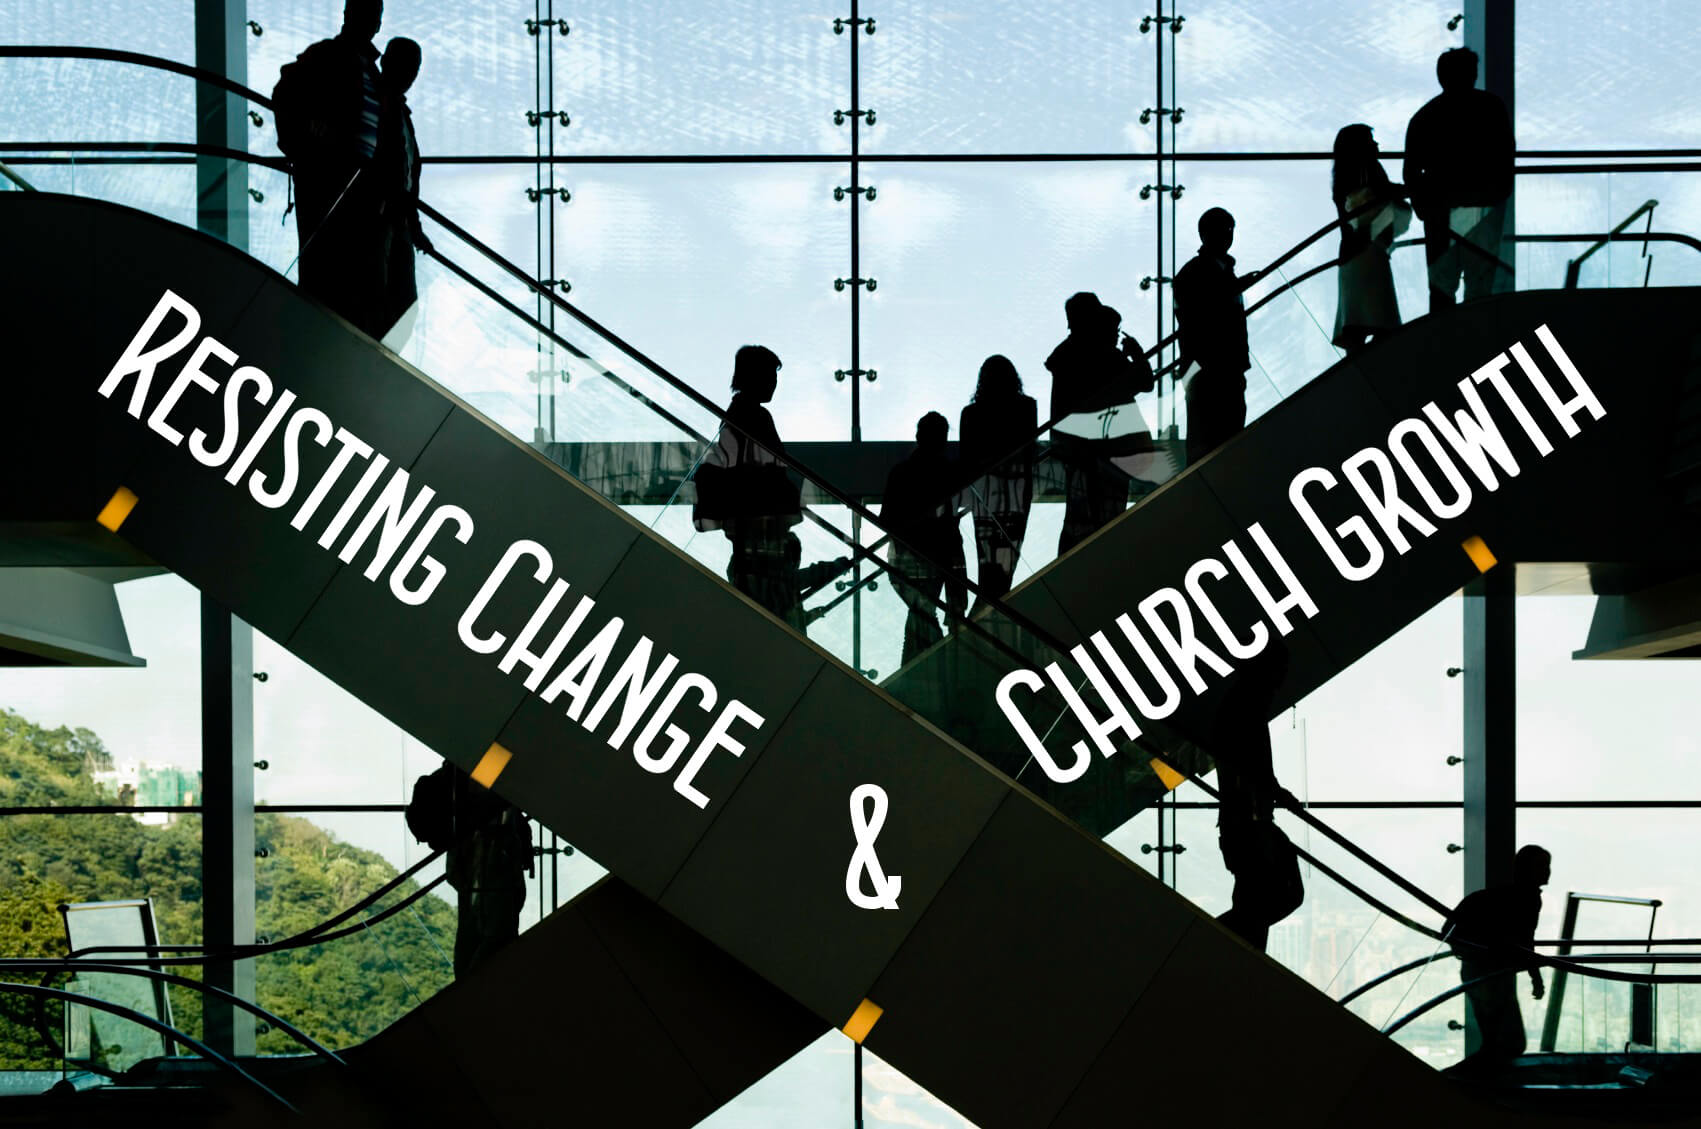 Is There a Connection Between Resisting Change and Church Growth?